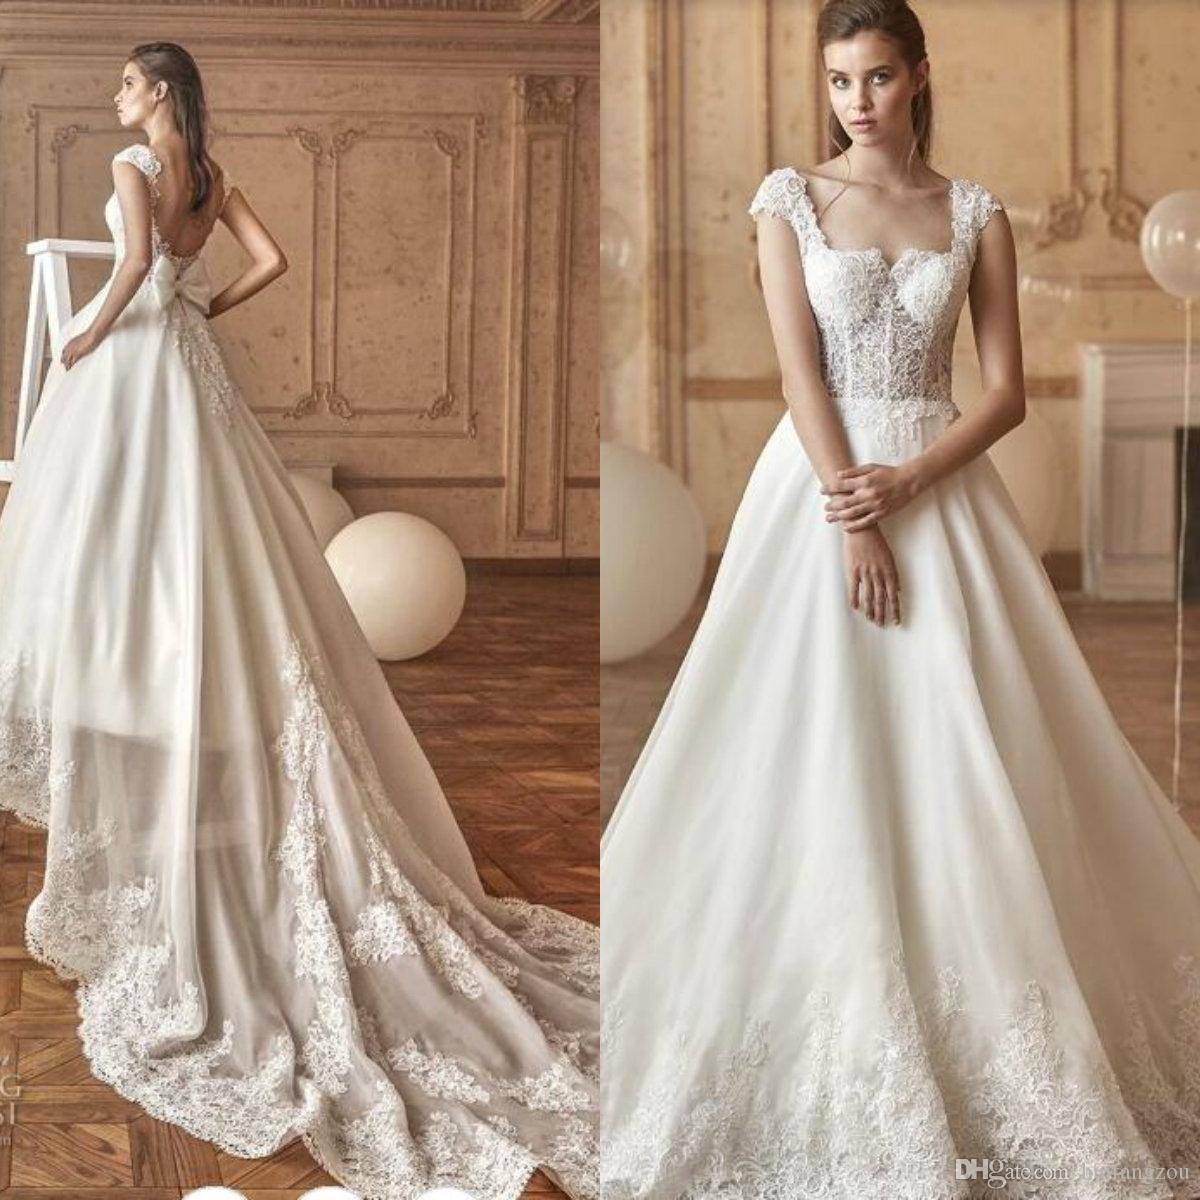 Vintage Princess Wedding Dress Illusion Bodice Lace Exposed Boning Appliques Bow Backless Bridal Gowns Sweep Train Wedding Dresses